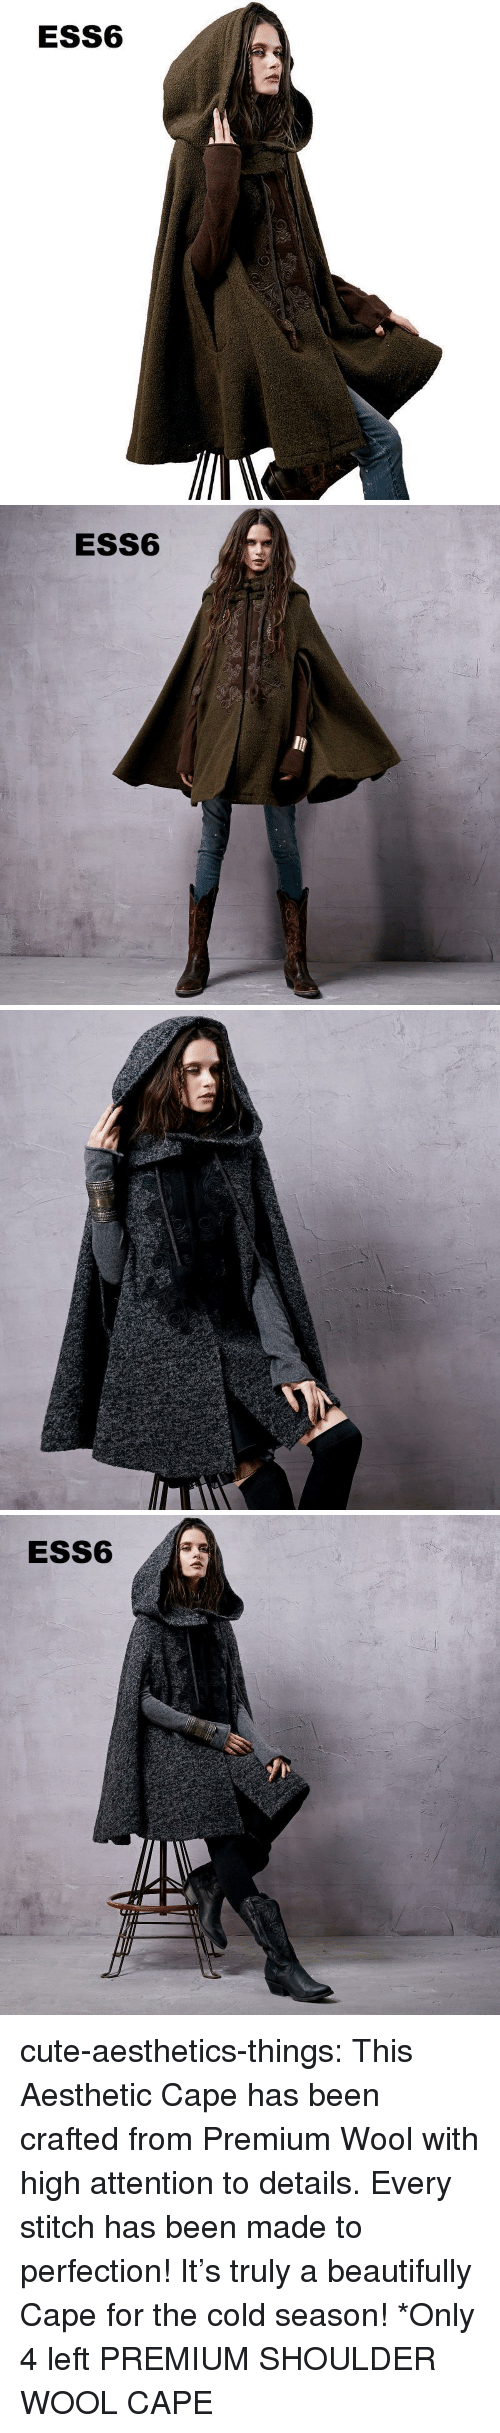 Cute, Target, and Tumblr: ESS6   ESS6   ESS6 cute-aesthetics-things:  This Aesthetic Cape has been crafted from Premium Wool with high attention to details. Every stitch has been made to perfection! It's truly a beautifully Cape for the cold season! *Only 4 left PREMIUMSHOULDER WOOL CAPE